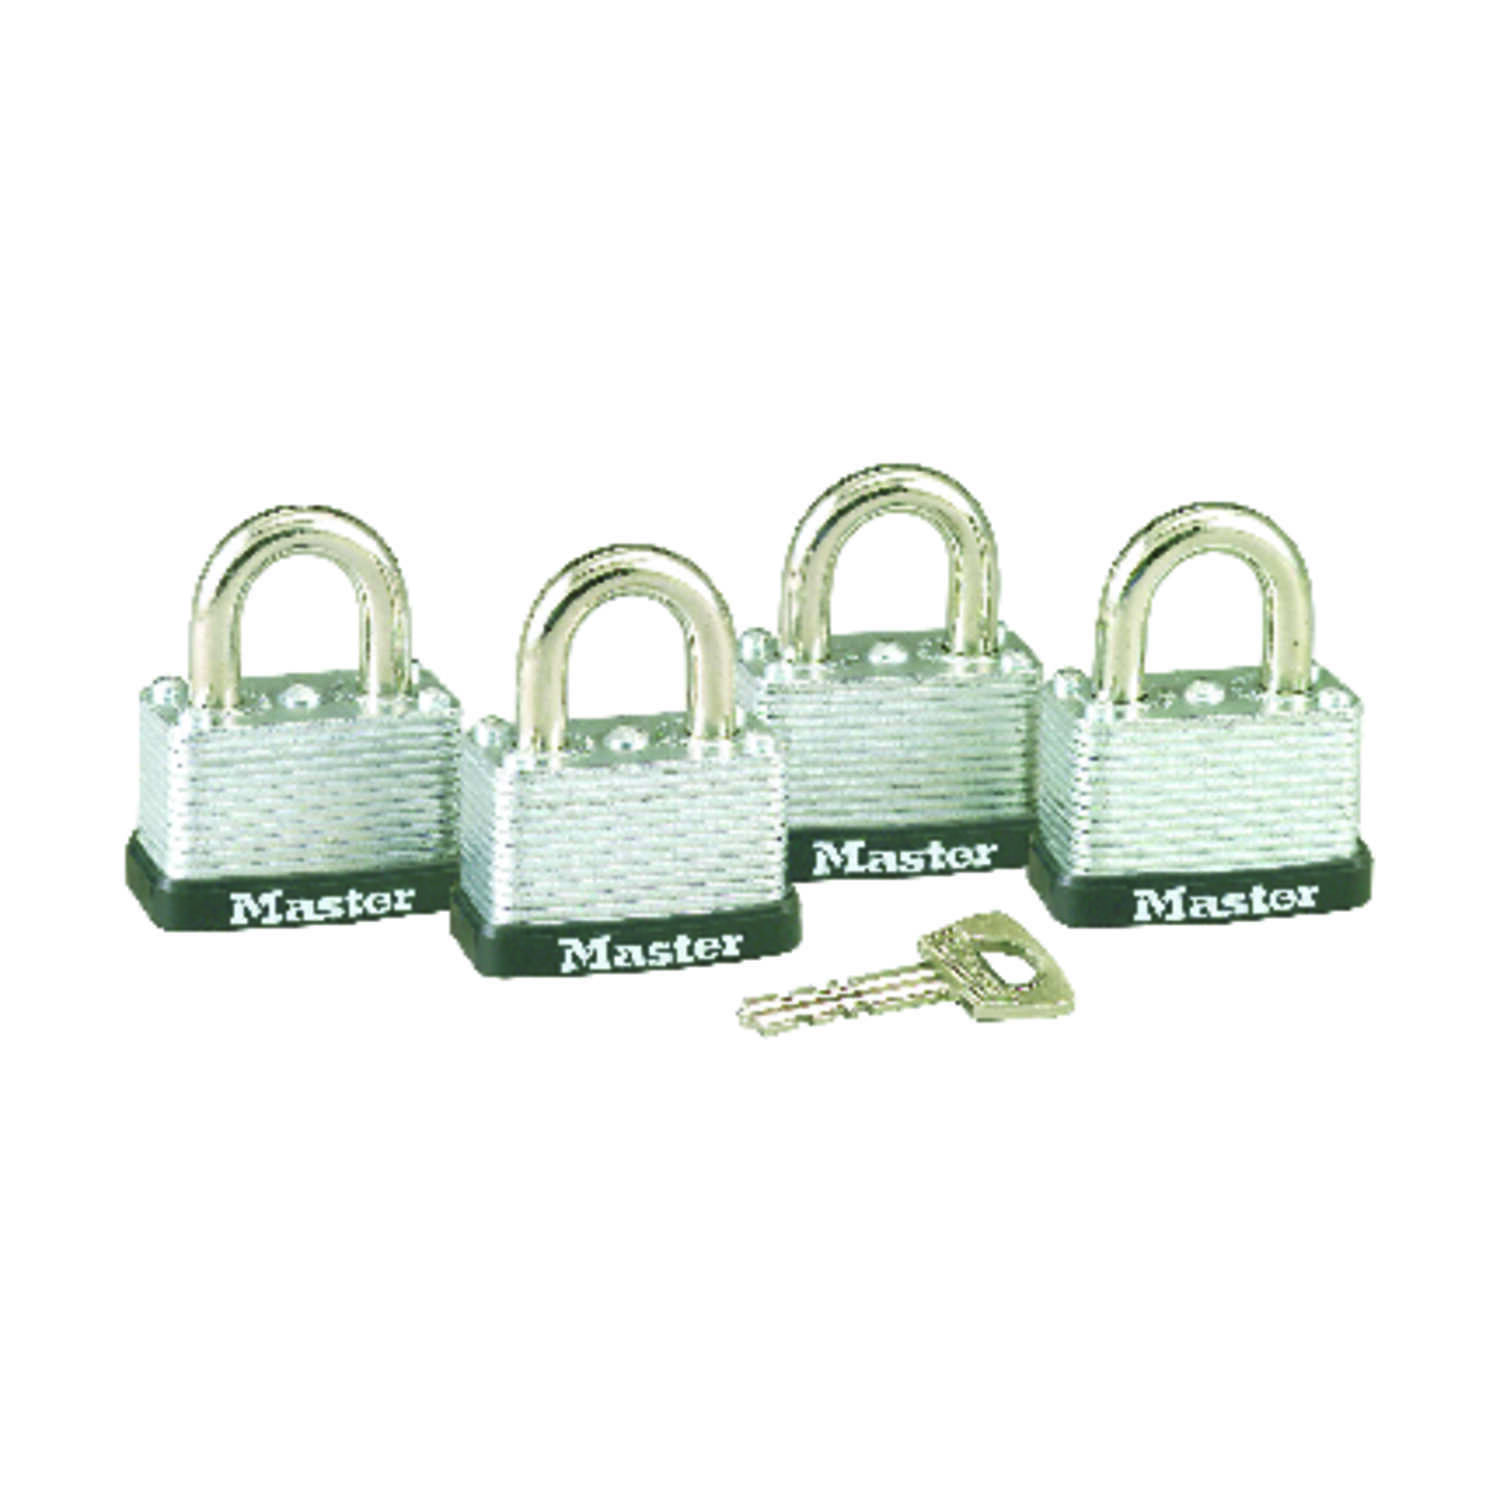 Master Lock  15/16 in. H x 13/16 in. W x 1-1/2 in. L Laminated Steel  Warded Locking  Padlock  4 pk